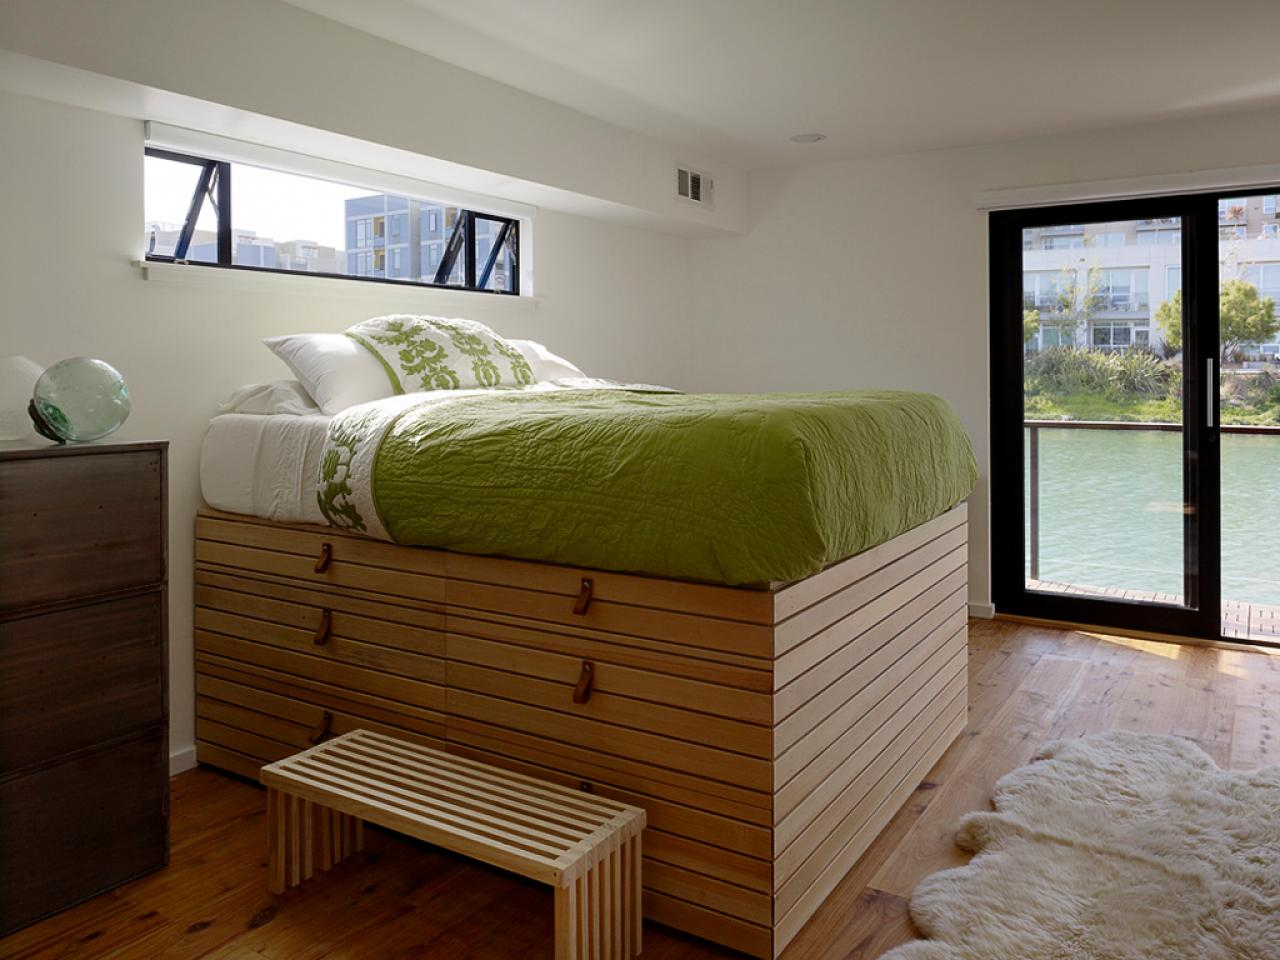 10 Beds That Look Good And Have Killer Storage Too Hgtv